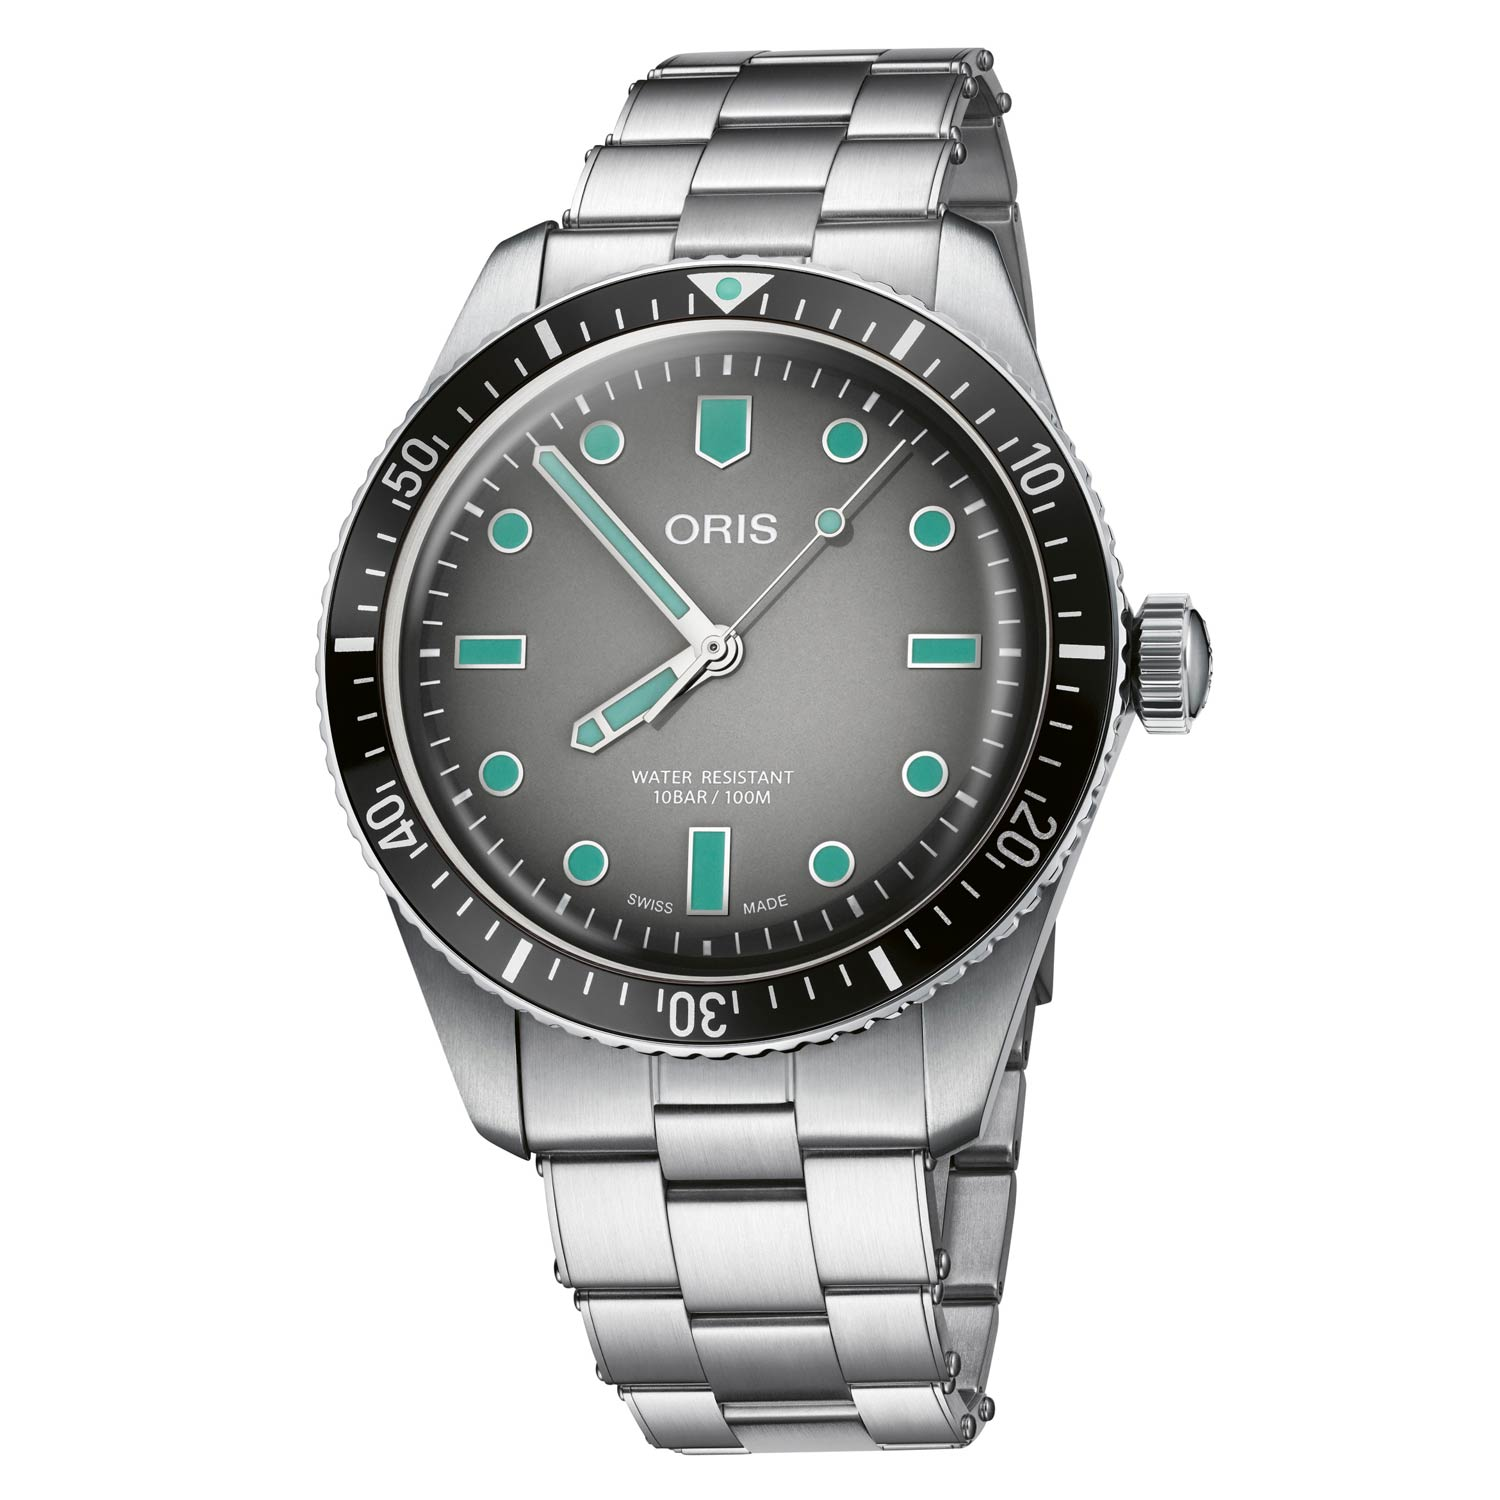 The watch has a slim case and domed sapphire which match the familiar to the comfortable.